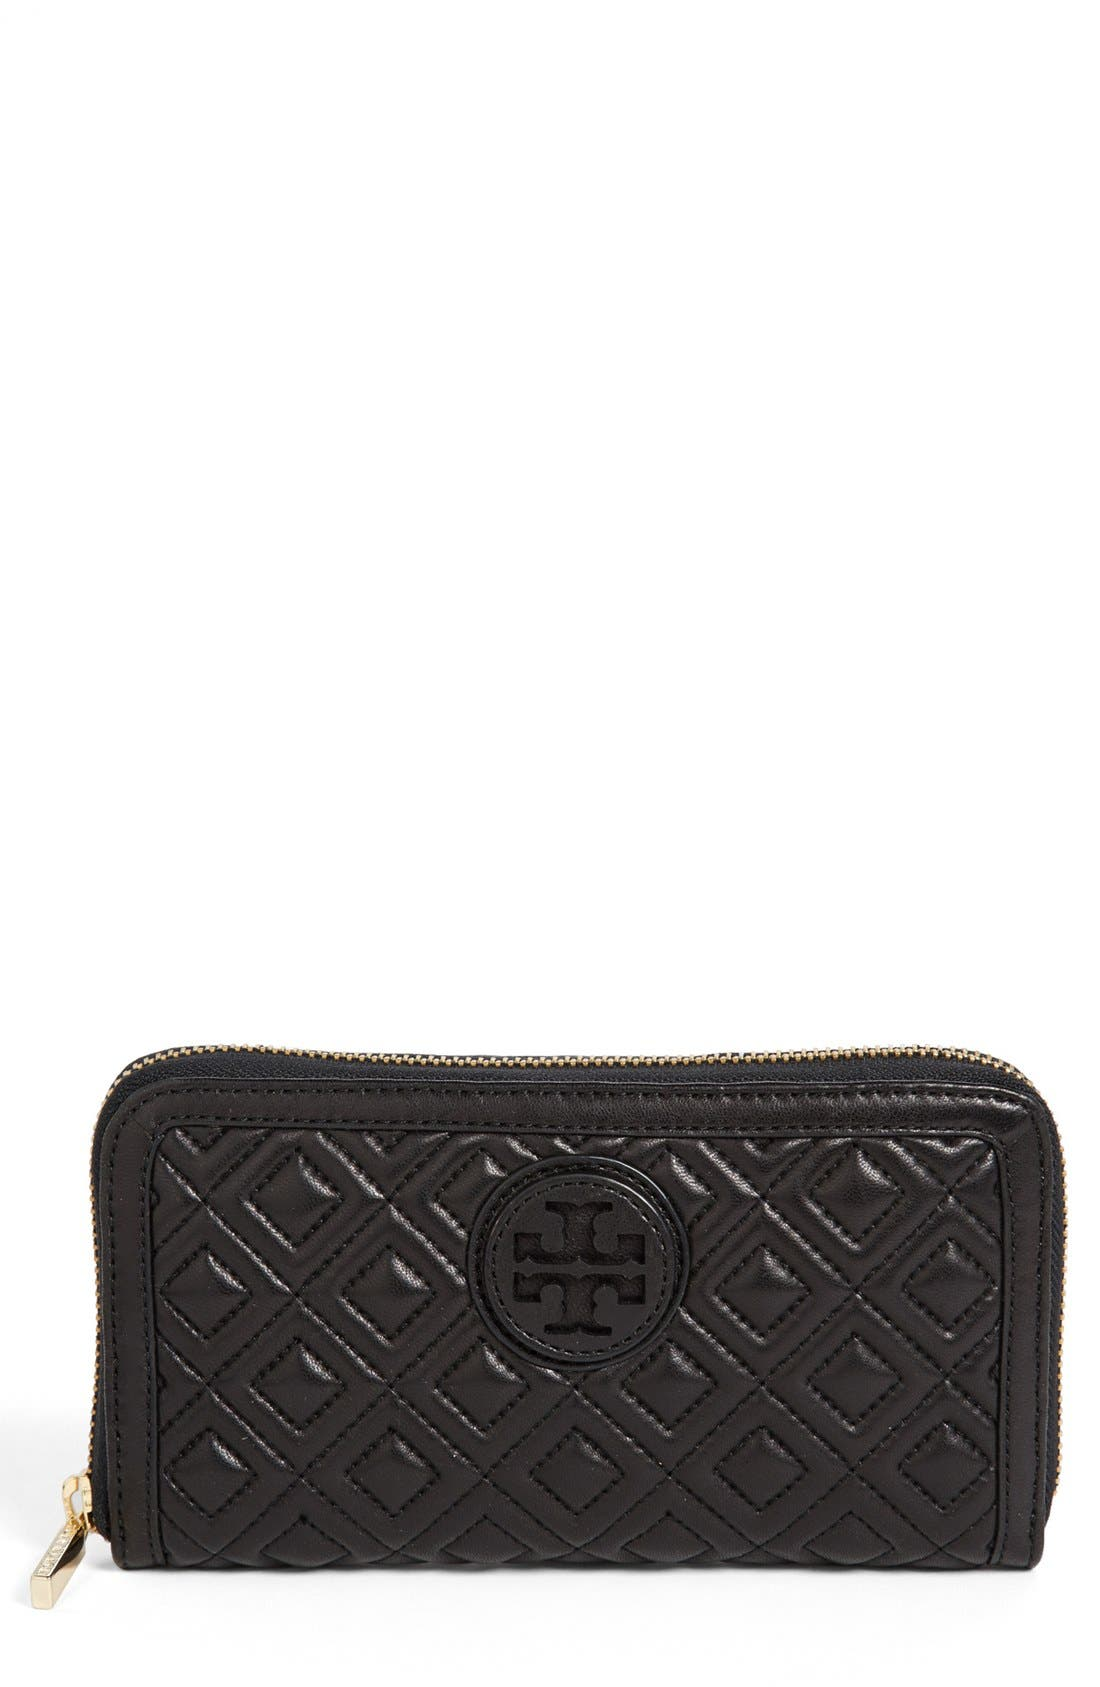 Main Image - Tory Burch 'Marion' Continental Wallet